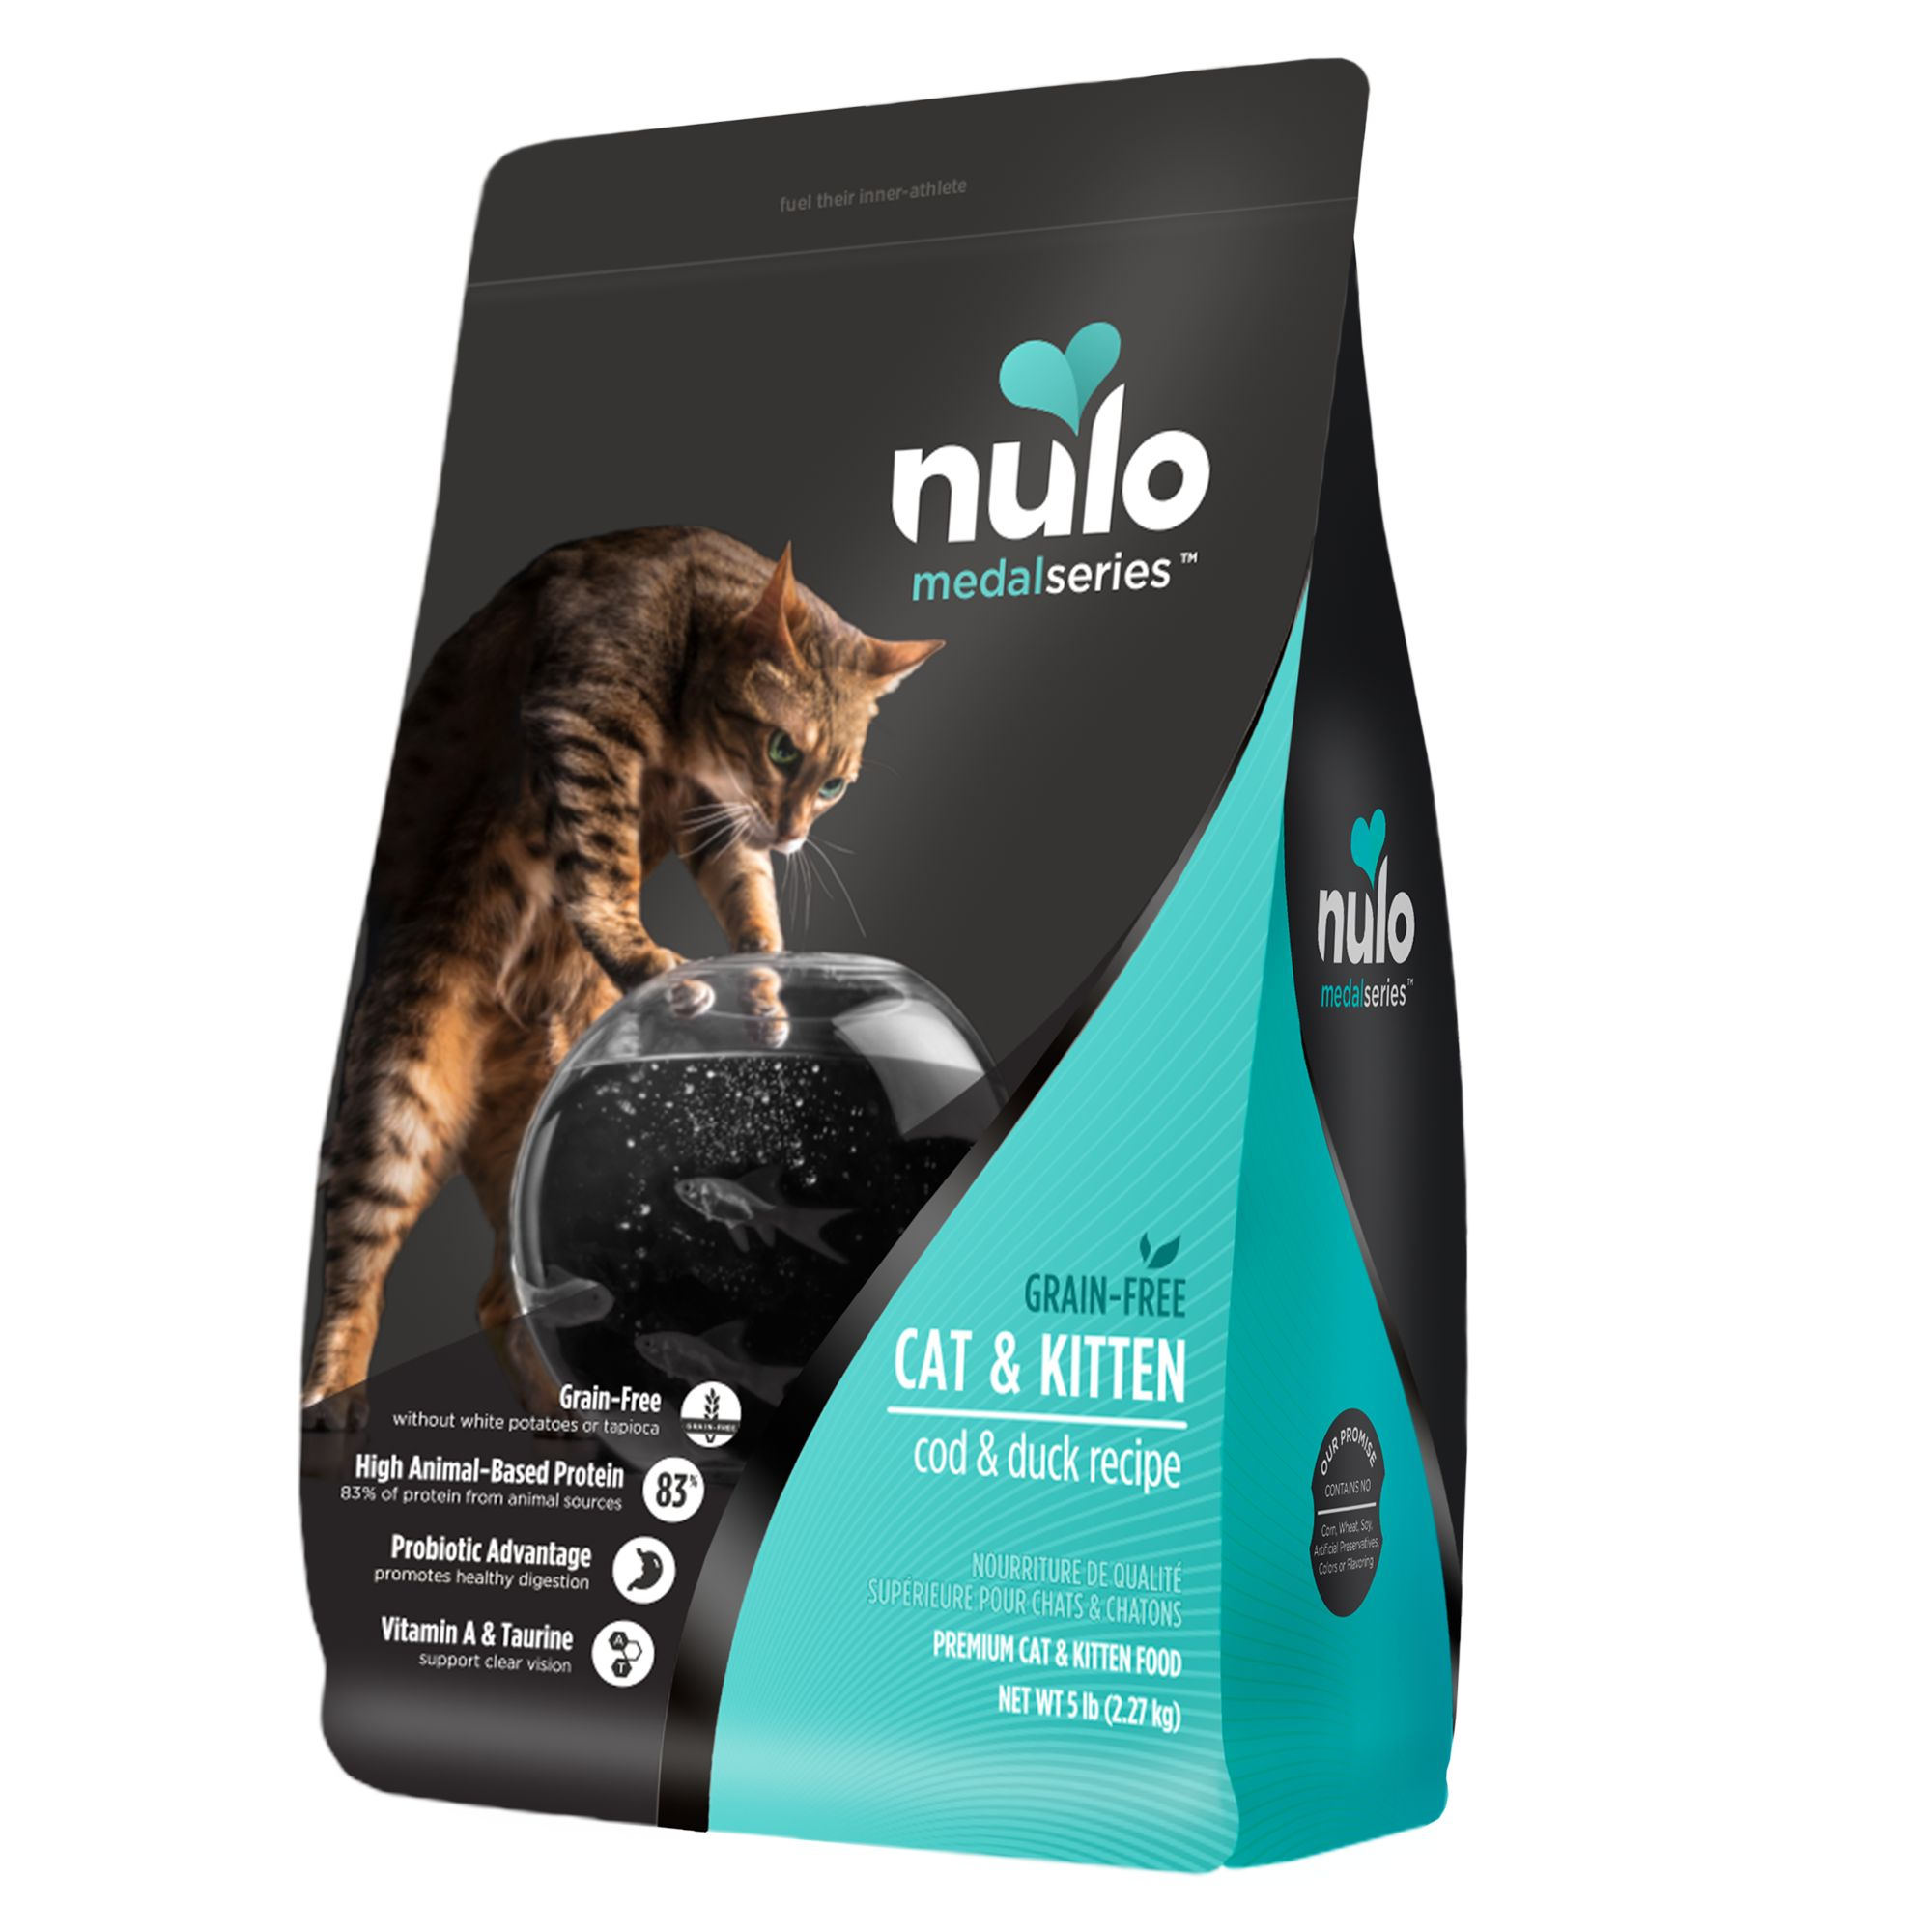 Nulo Medalseries Cat And Kitten Food Grain Free Cod And Duck Size 5 Lb